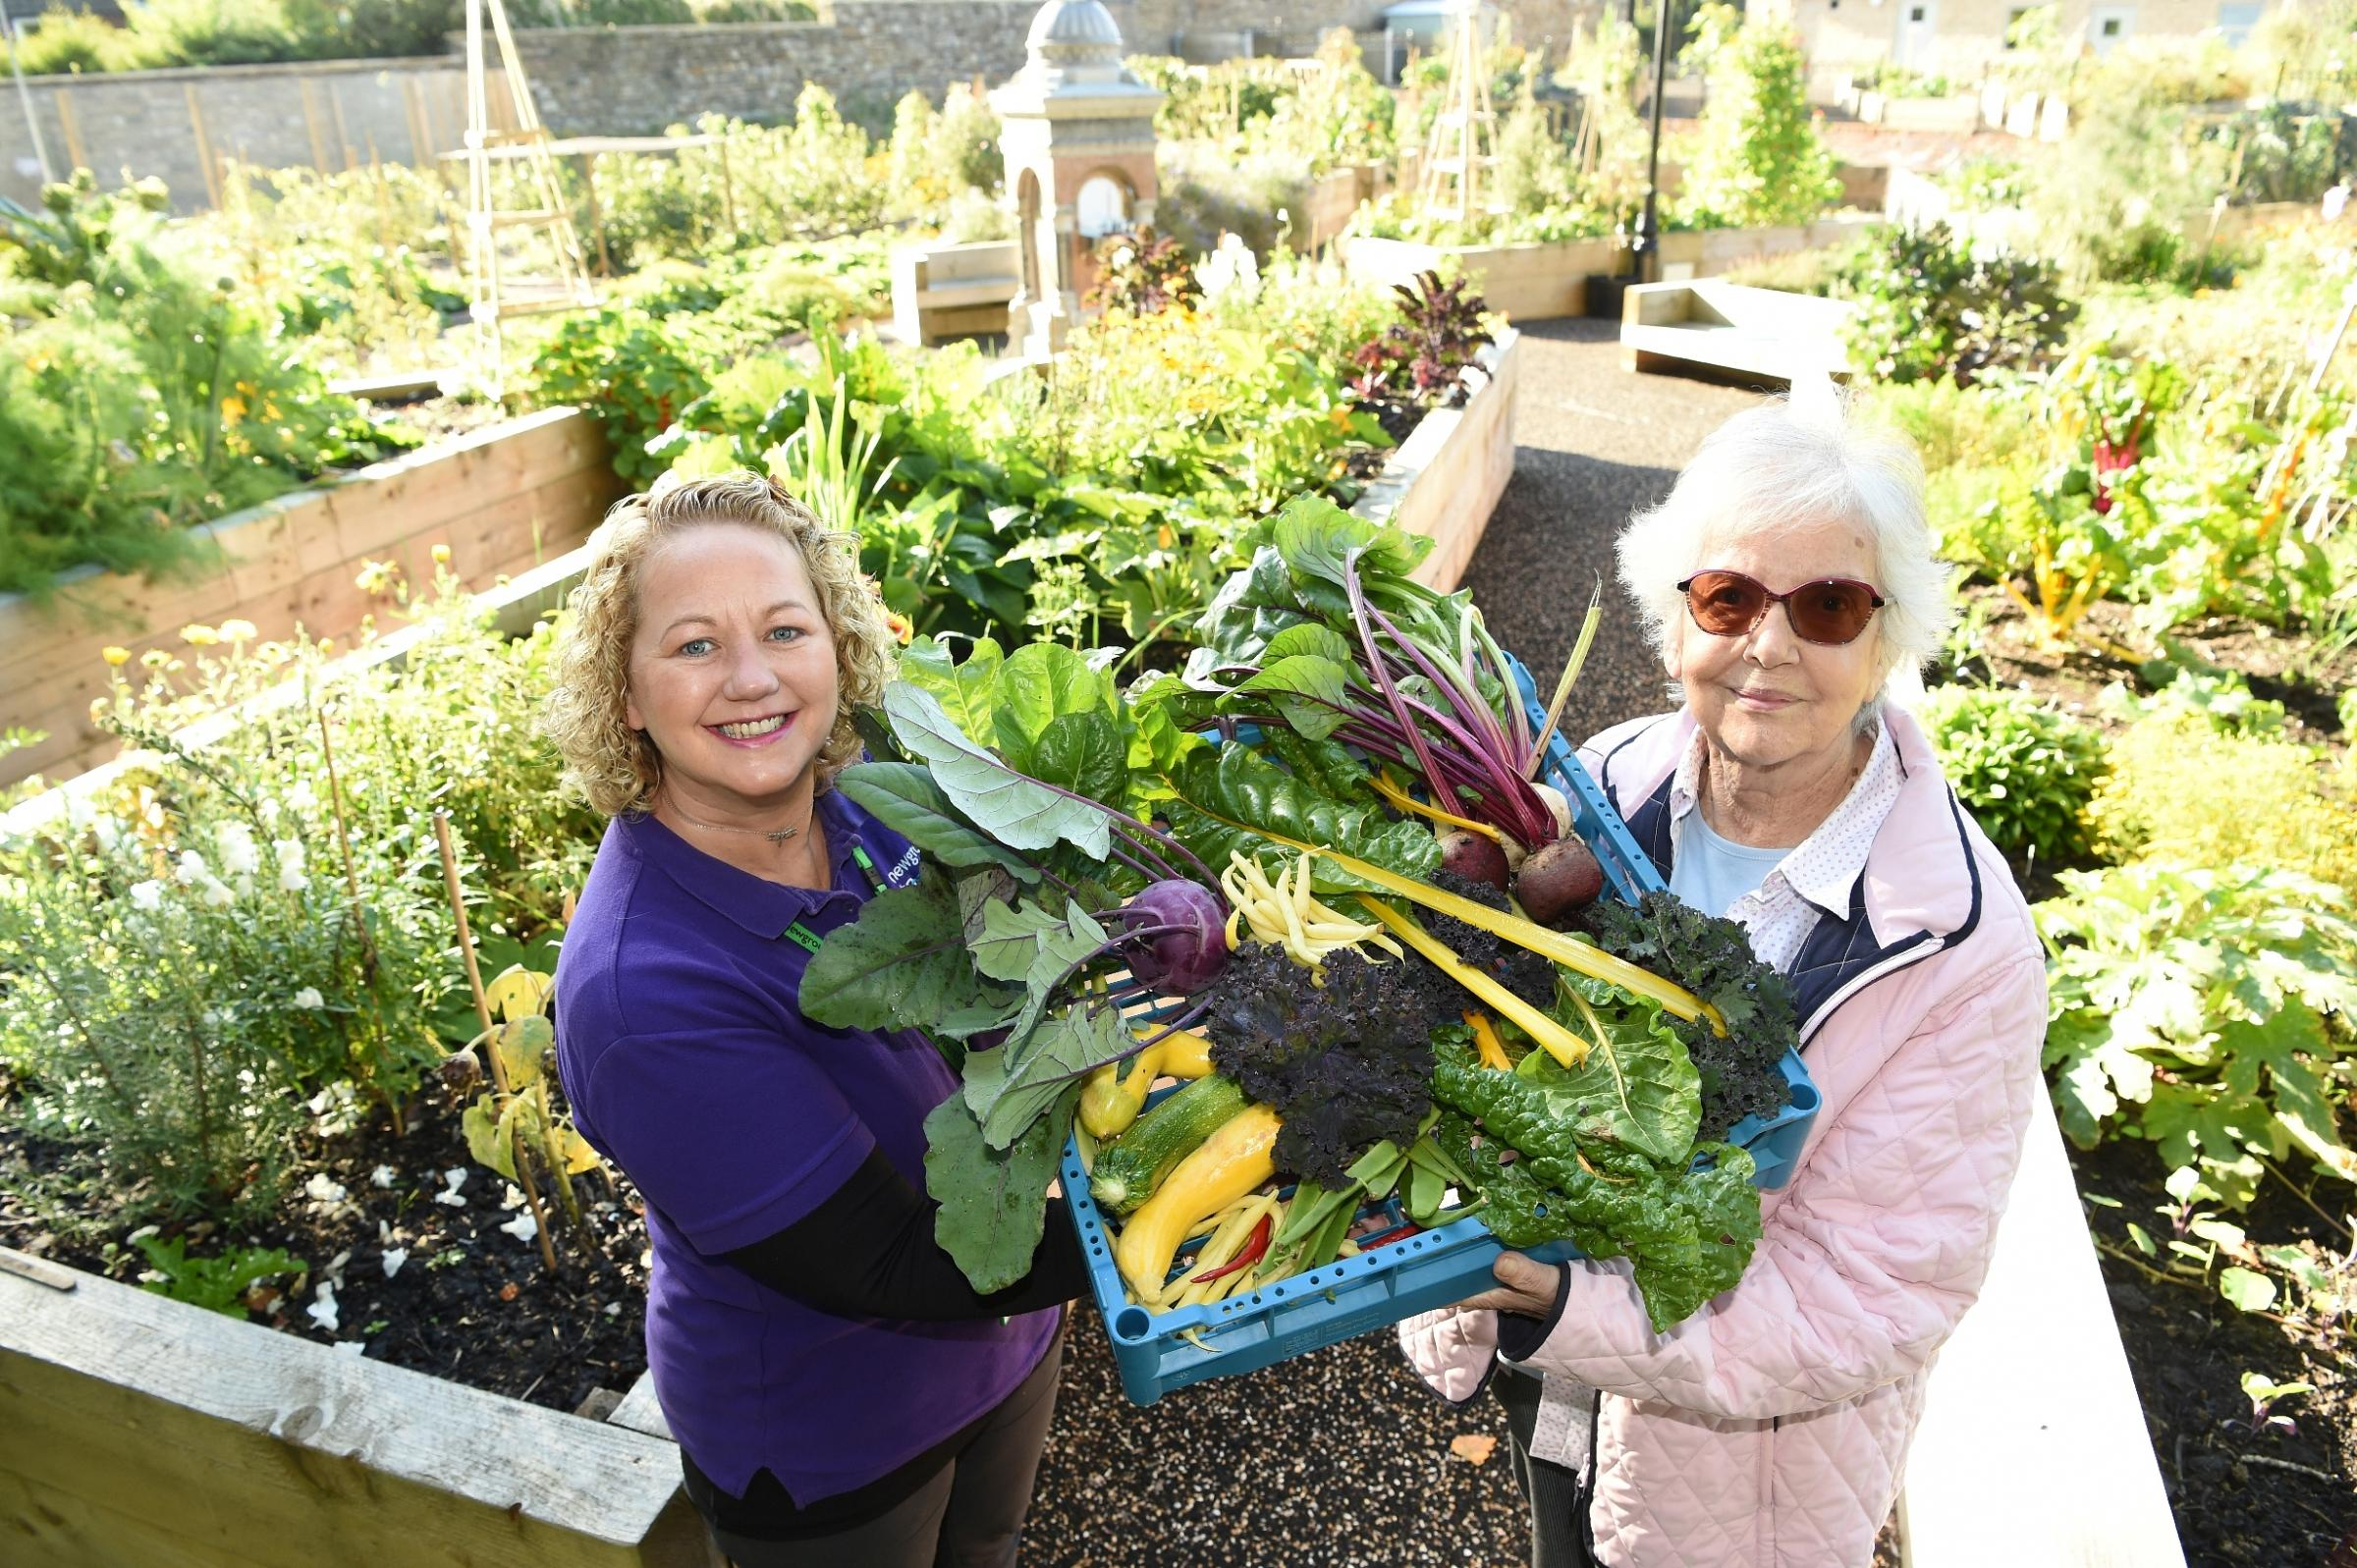 Newground at Rhyddings Park Volunteer Engagement Officer, Joanne Shaw and Nancy Hindle, Union Road Community Food Bank